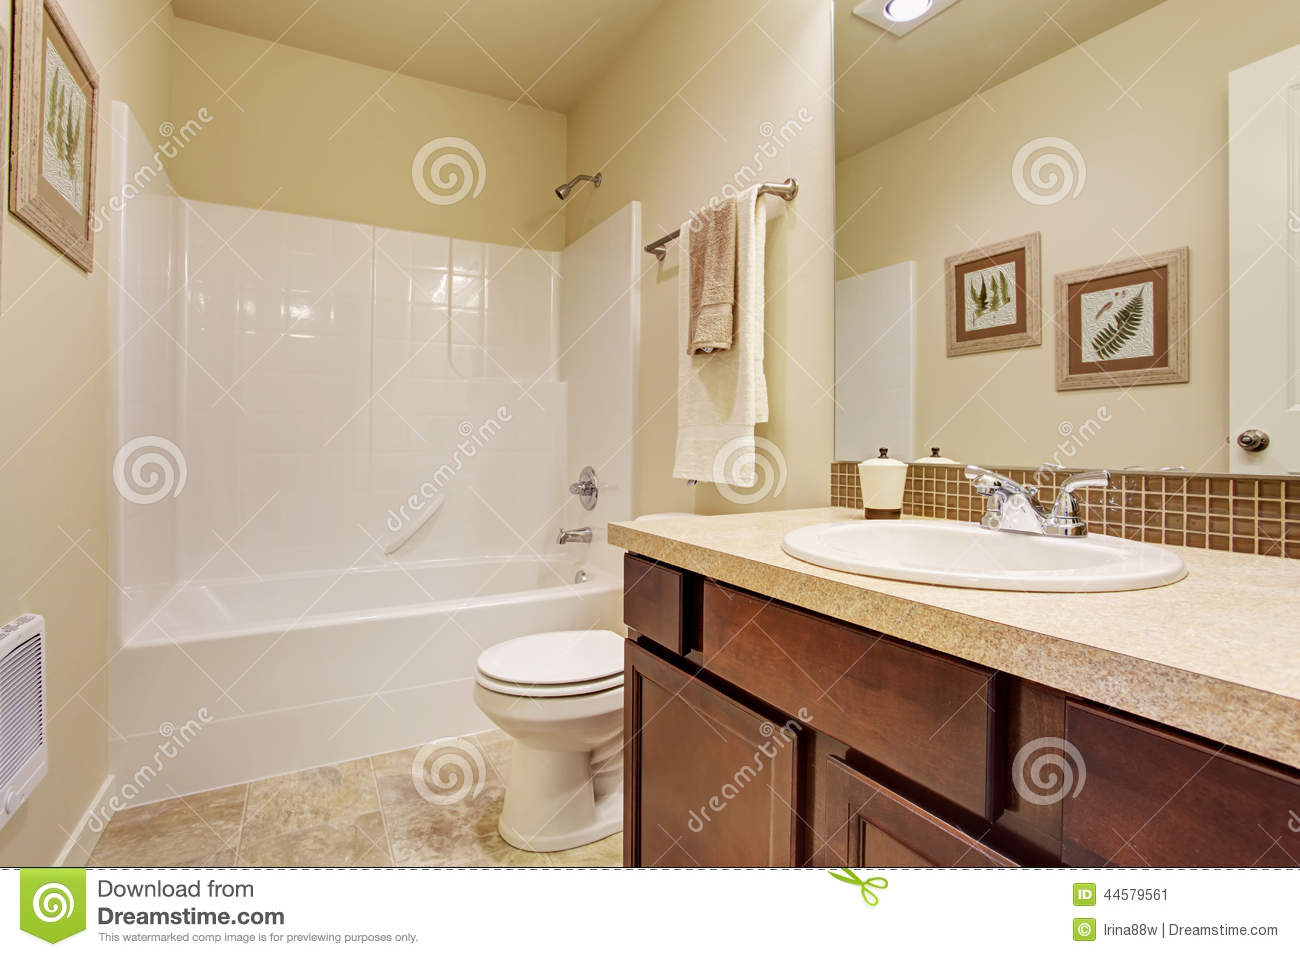 empty bathroom in soft ivory color with tile wall trim stock image image of architect bath. Black Bedroom Furniture Sets. Home Design Ideas